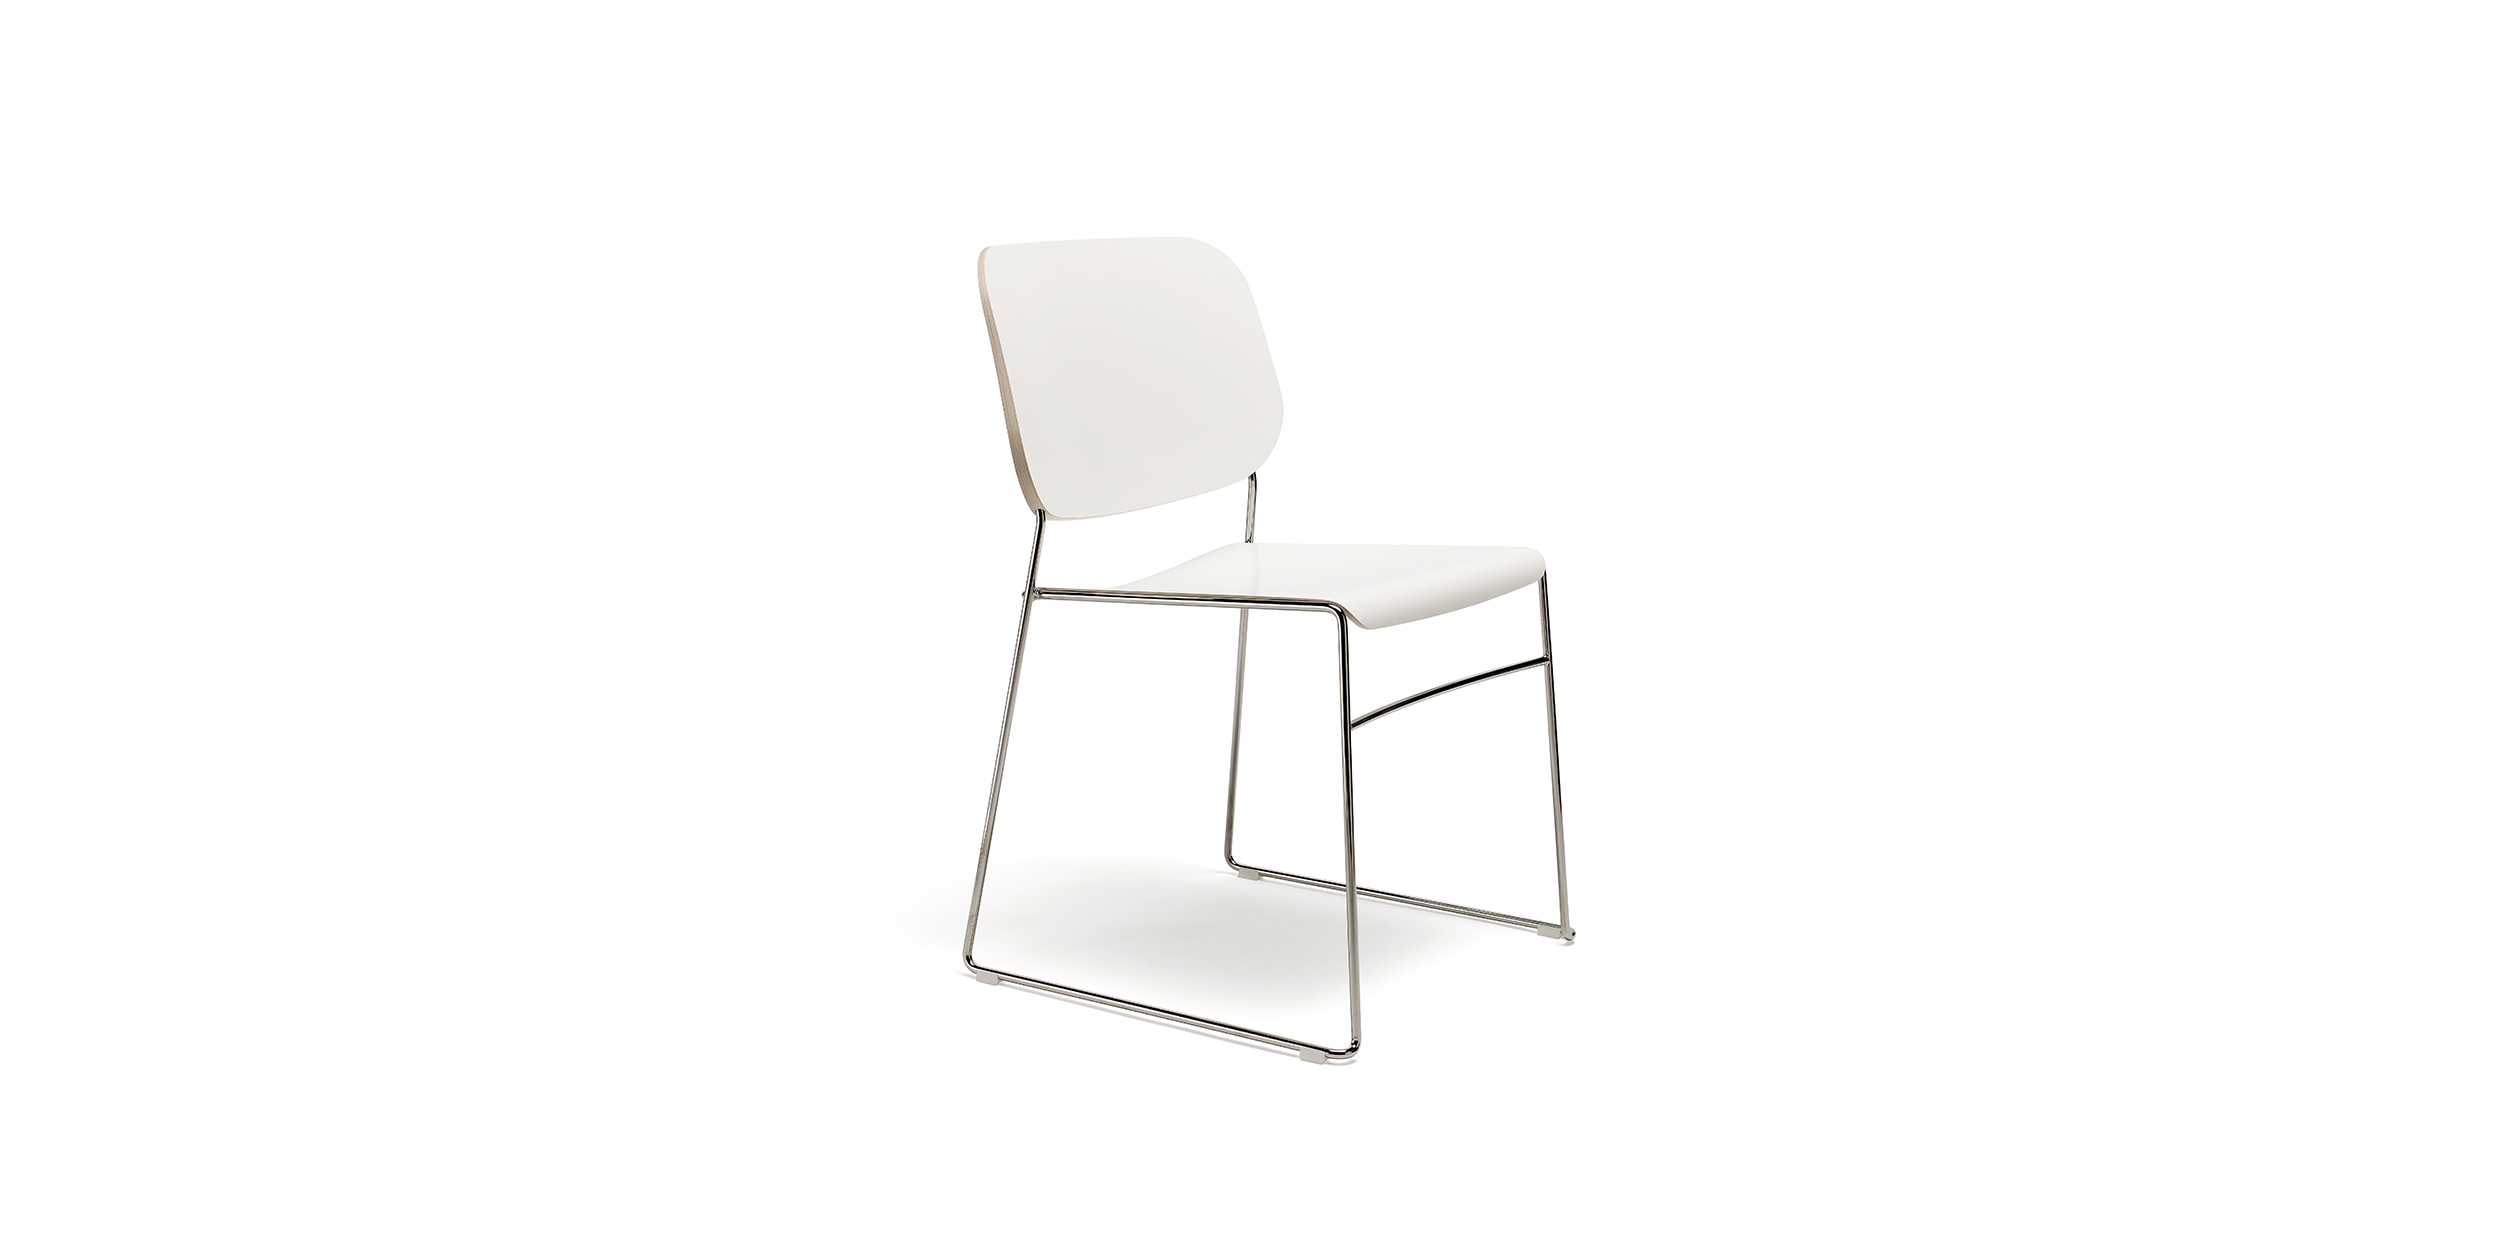 Lite Stackable Chair Furniture By Broberg Ridderstrale